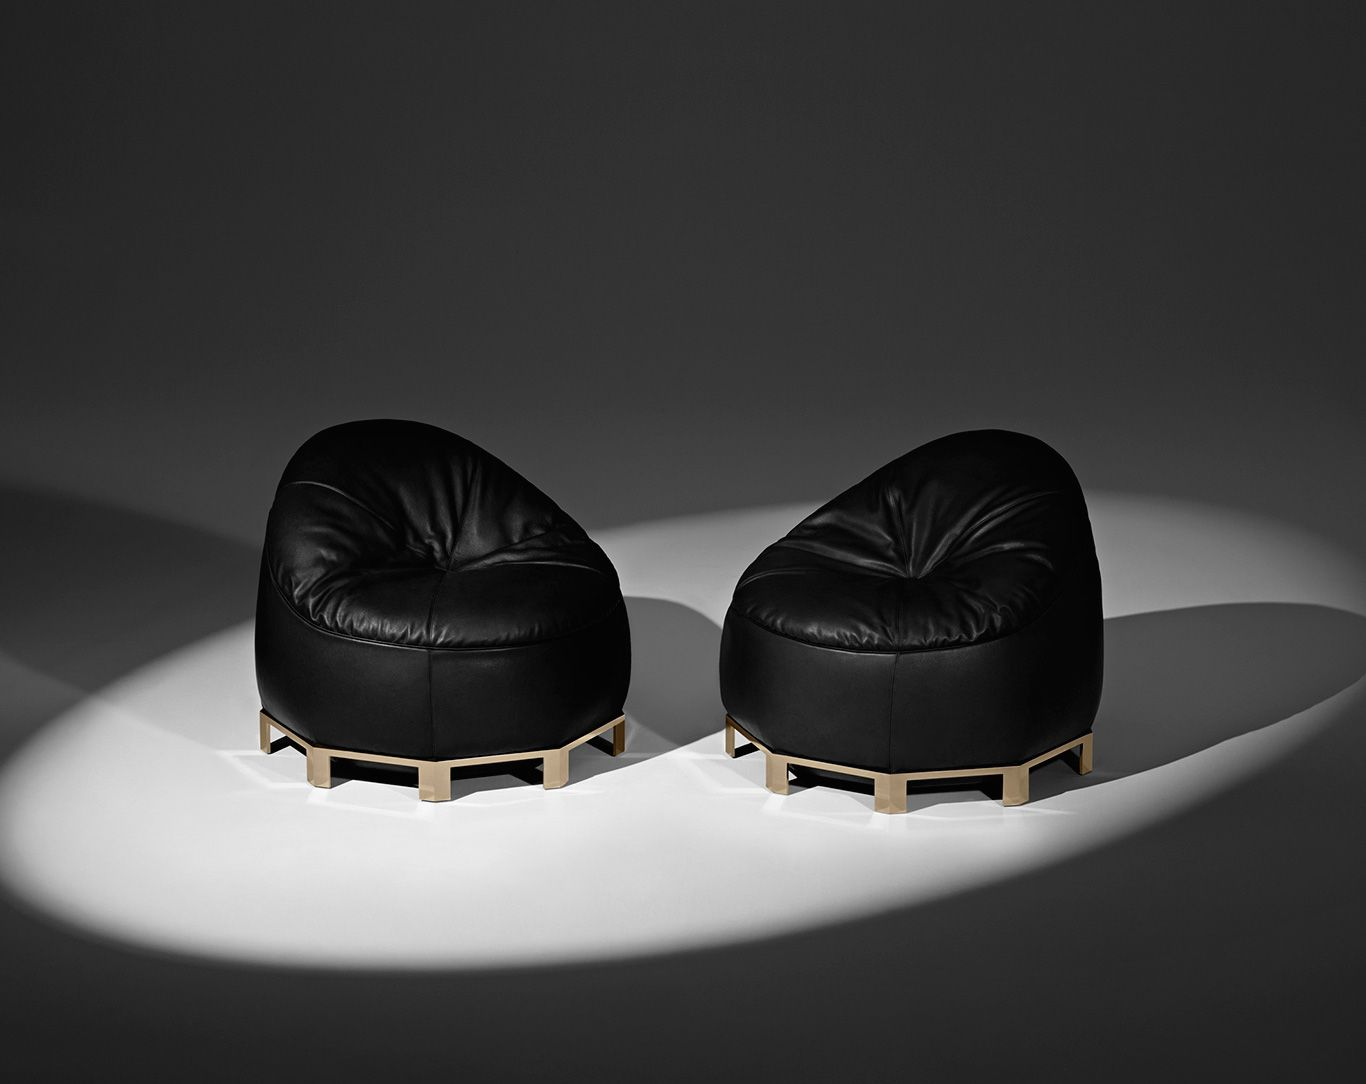 Alexander Wang Releases His Collaboration With The Italian